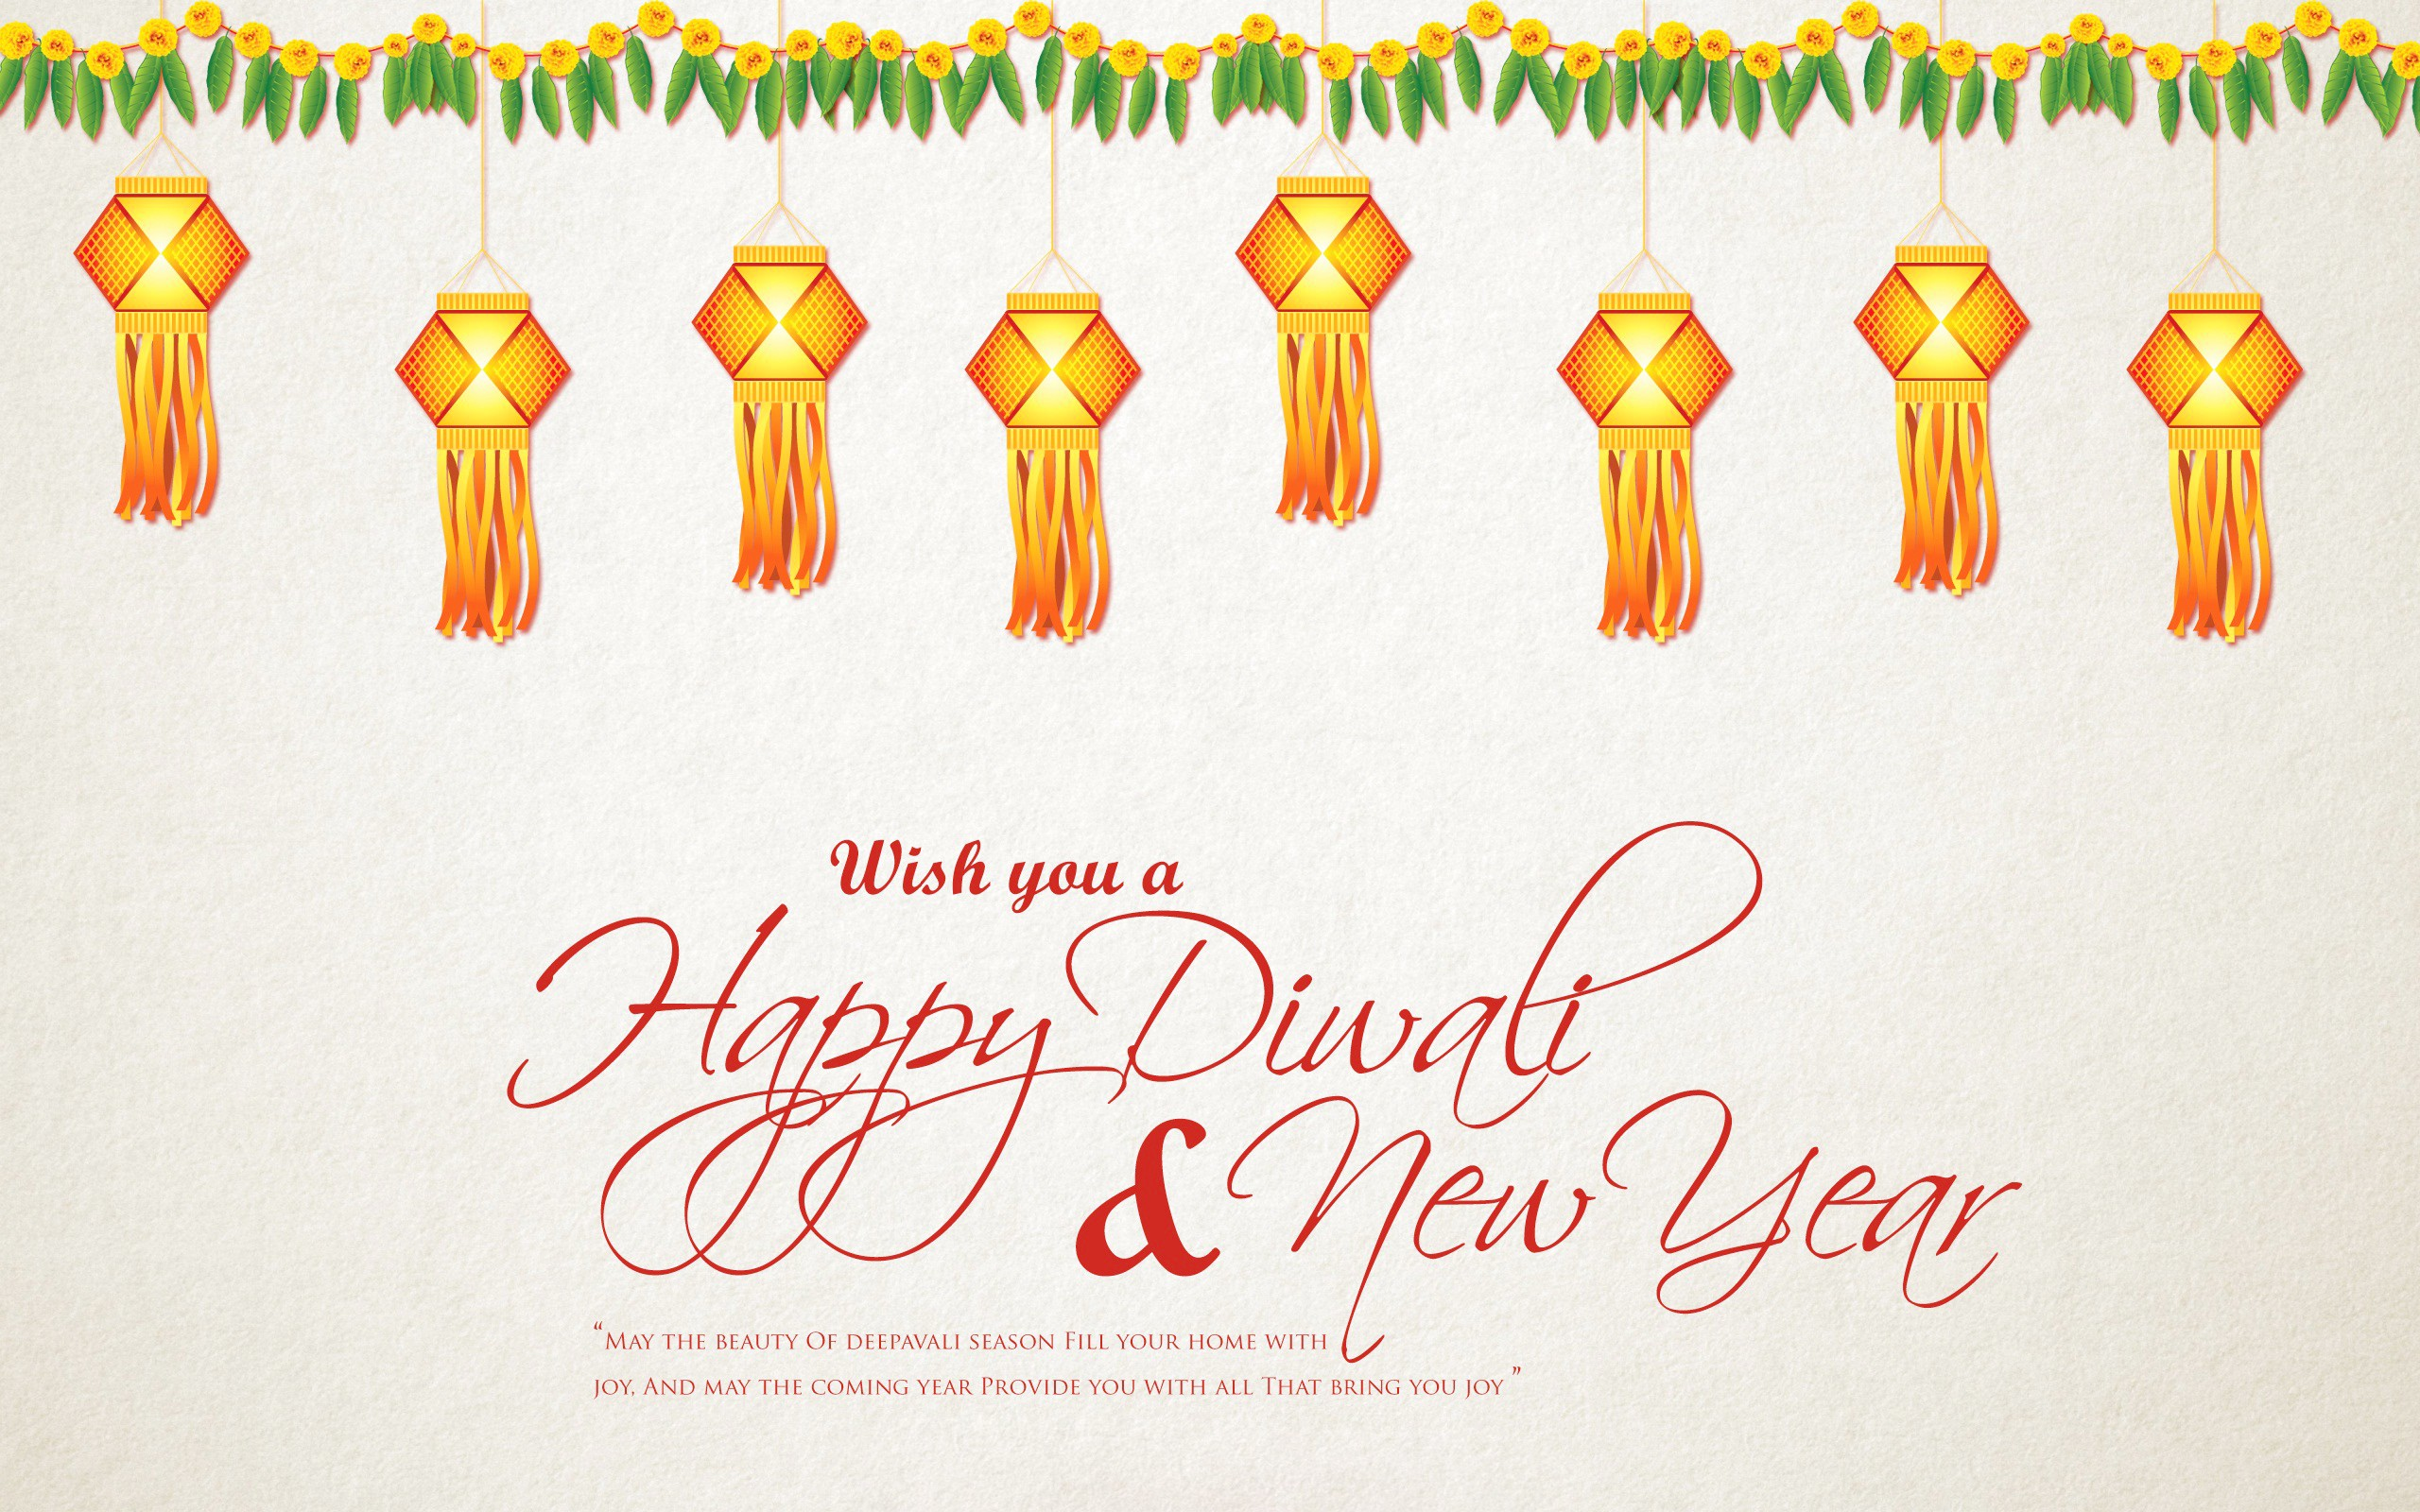 wish you happy diwali new year greeting